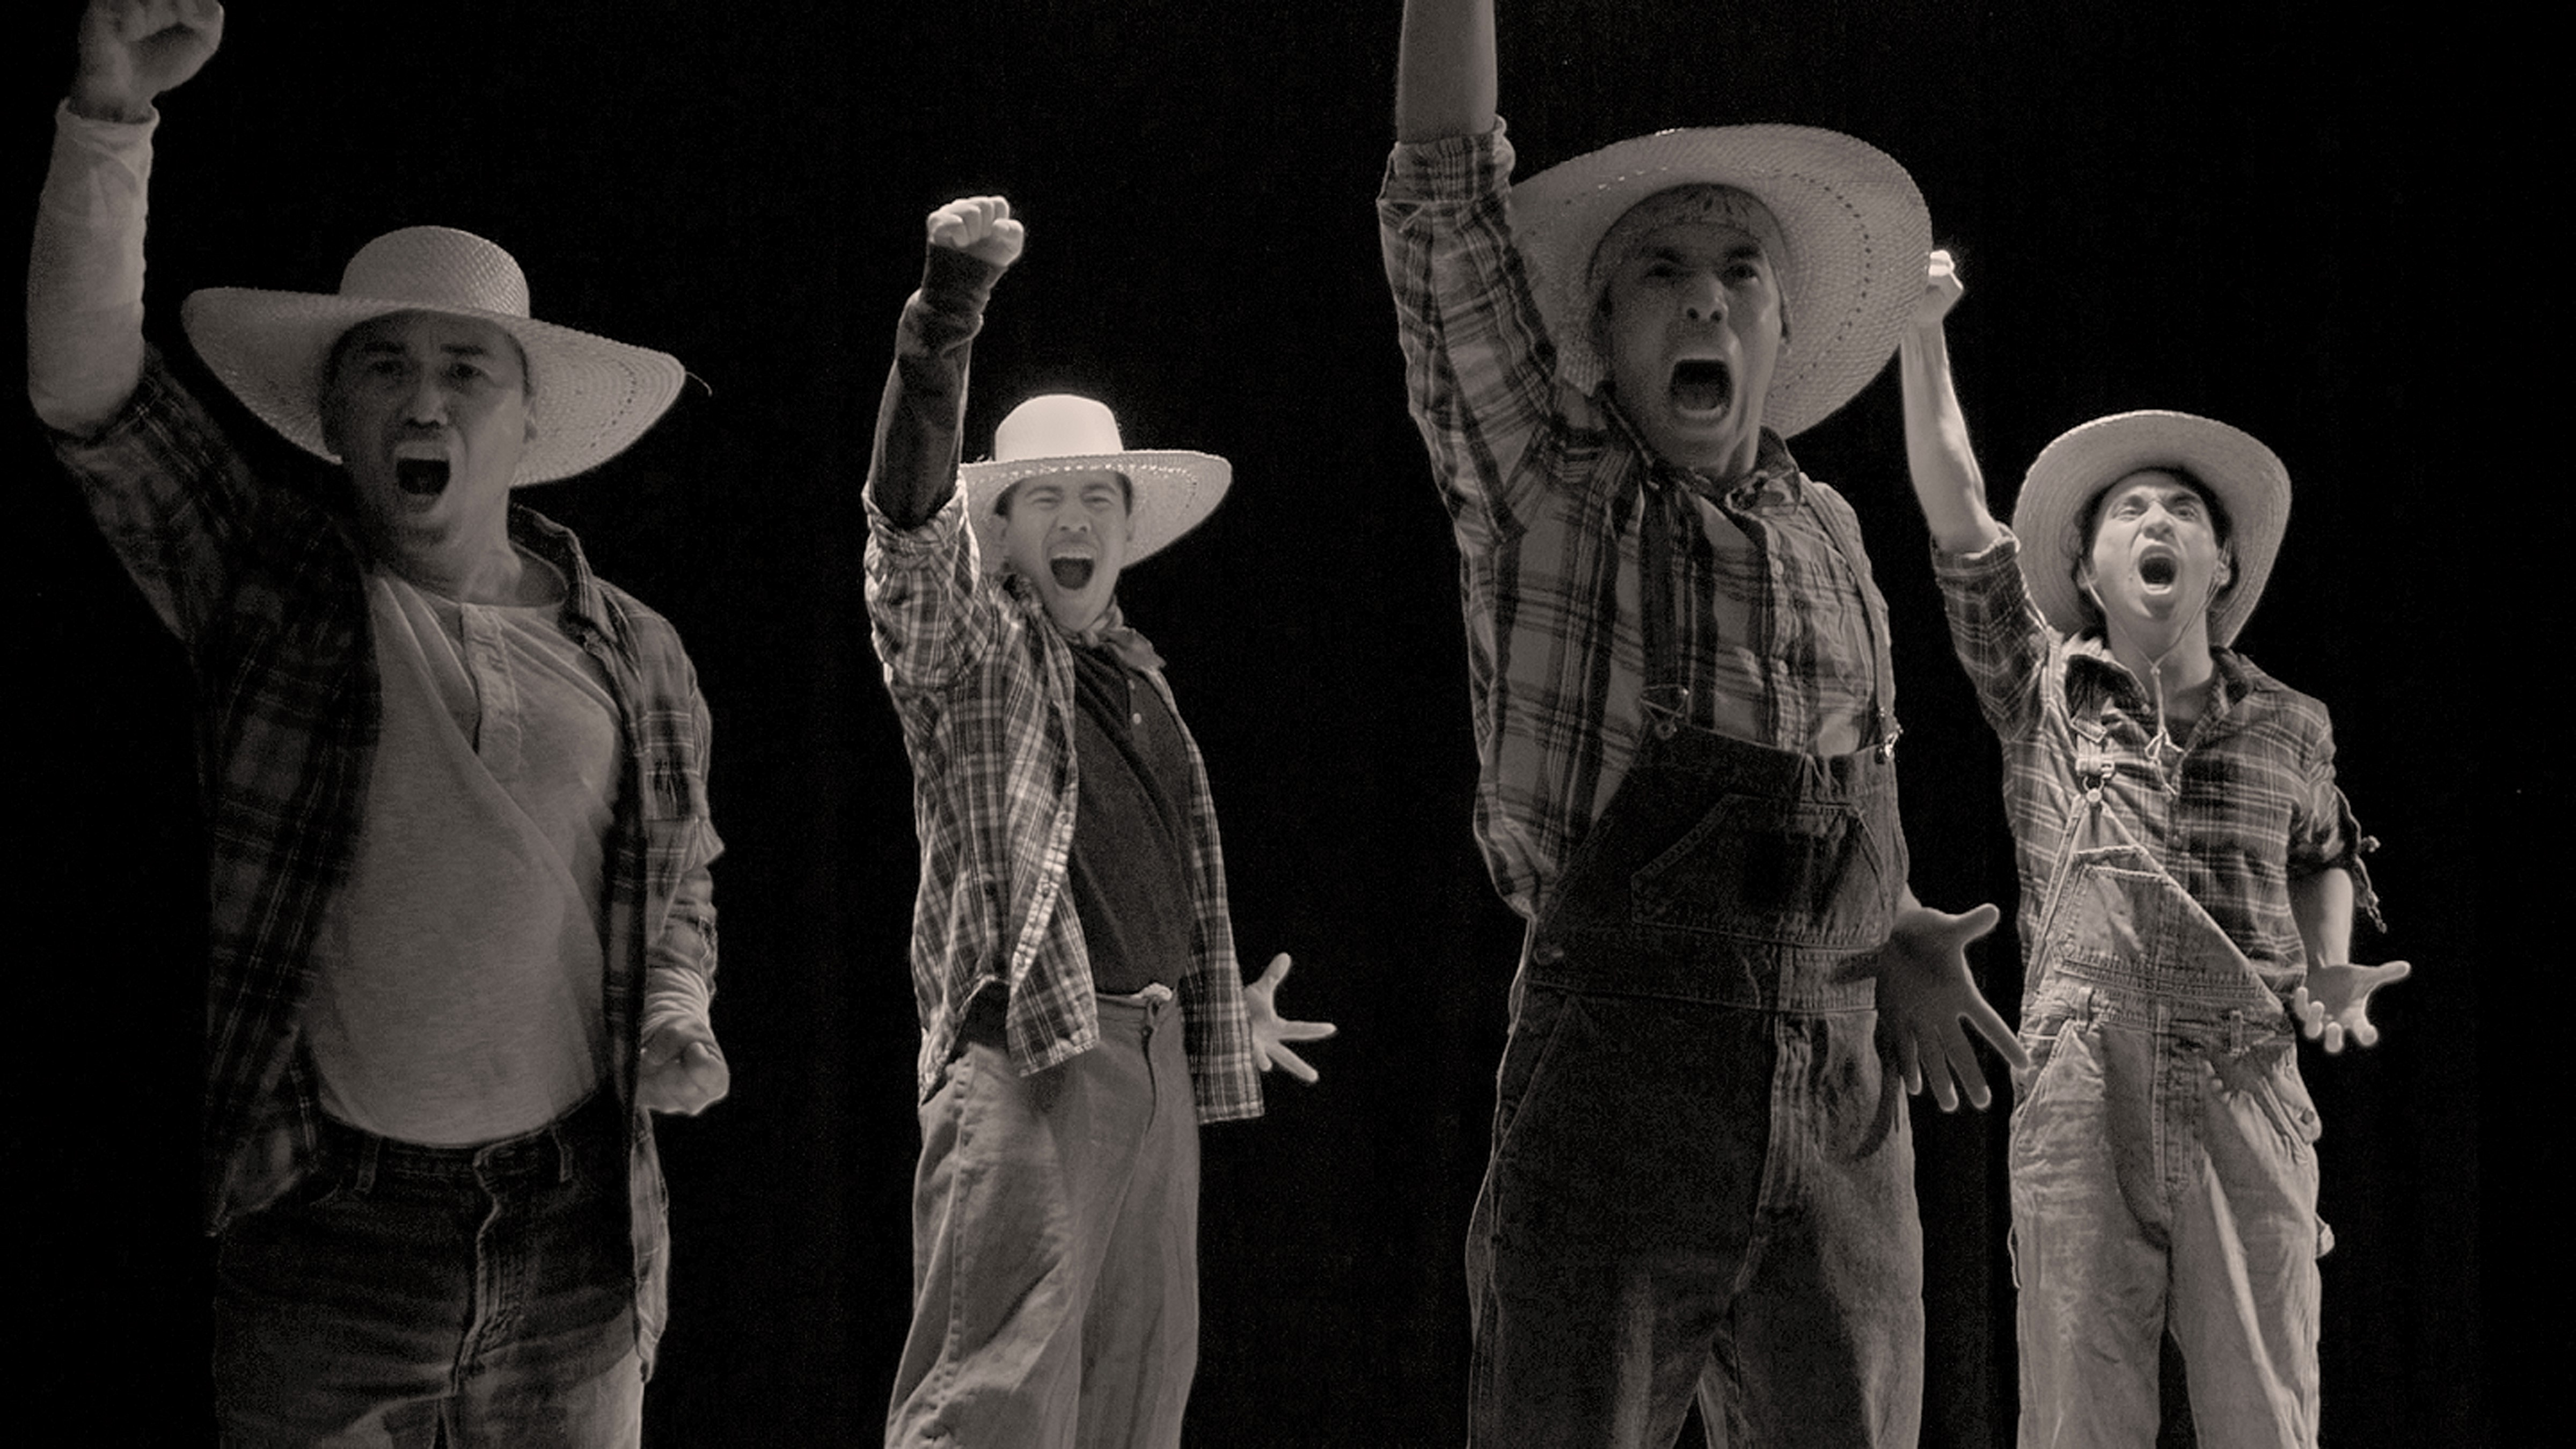 A black and white photo of four men dressed in laborers clothing with their fists raised up in the air and with mouths open shouting.